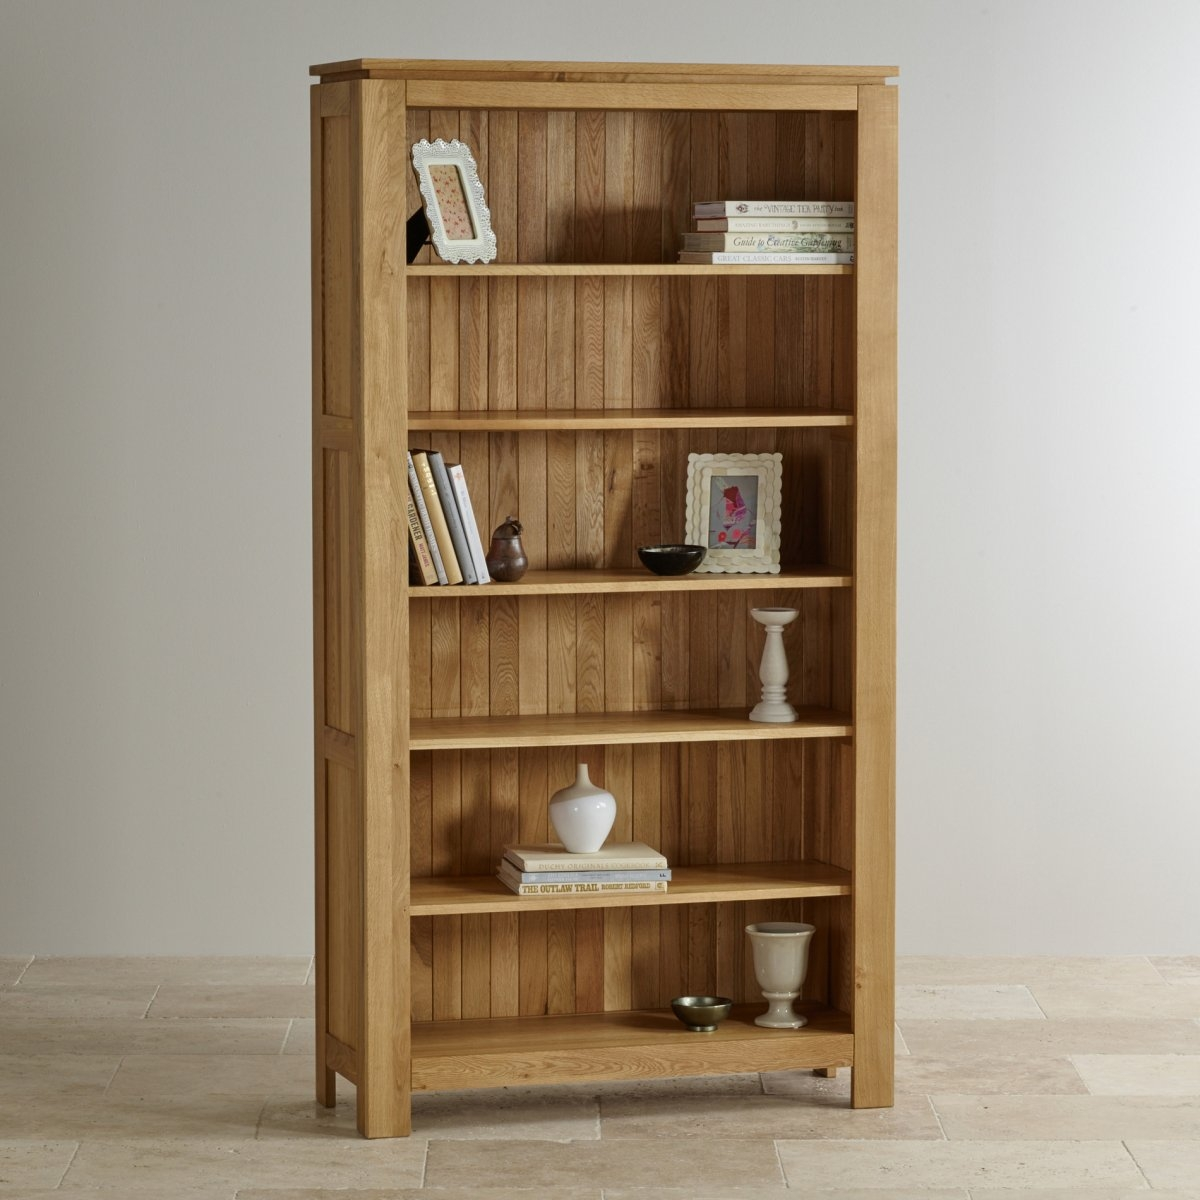 Galway Natural Solid Oak Bookcase Living Room Furniture Inside Oak Bookcase (#6 of 8)